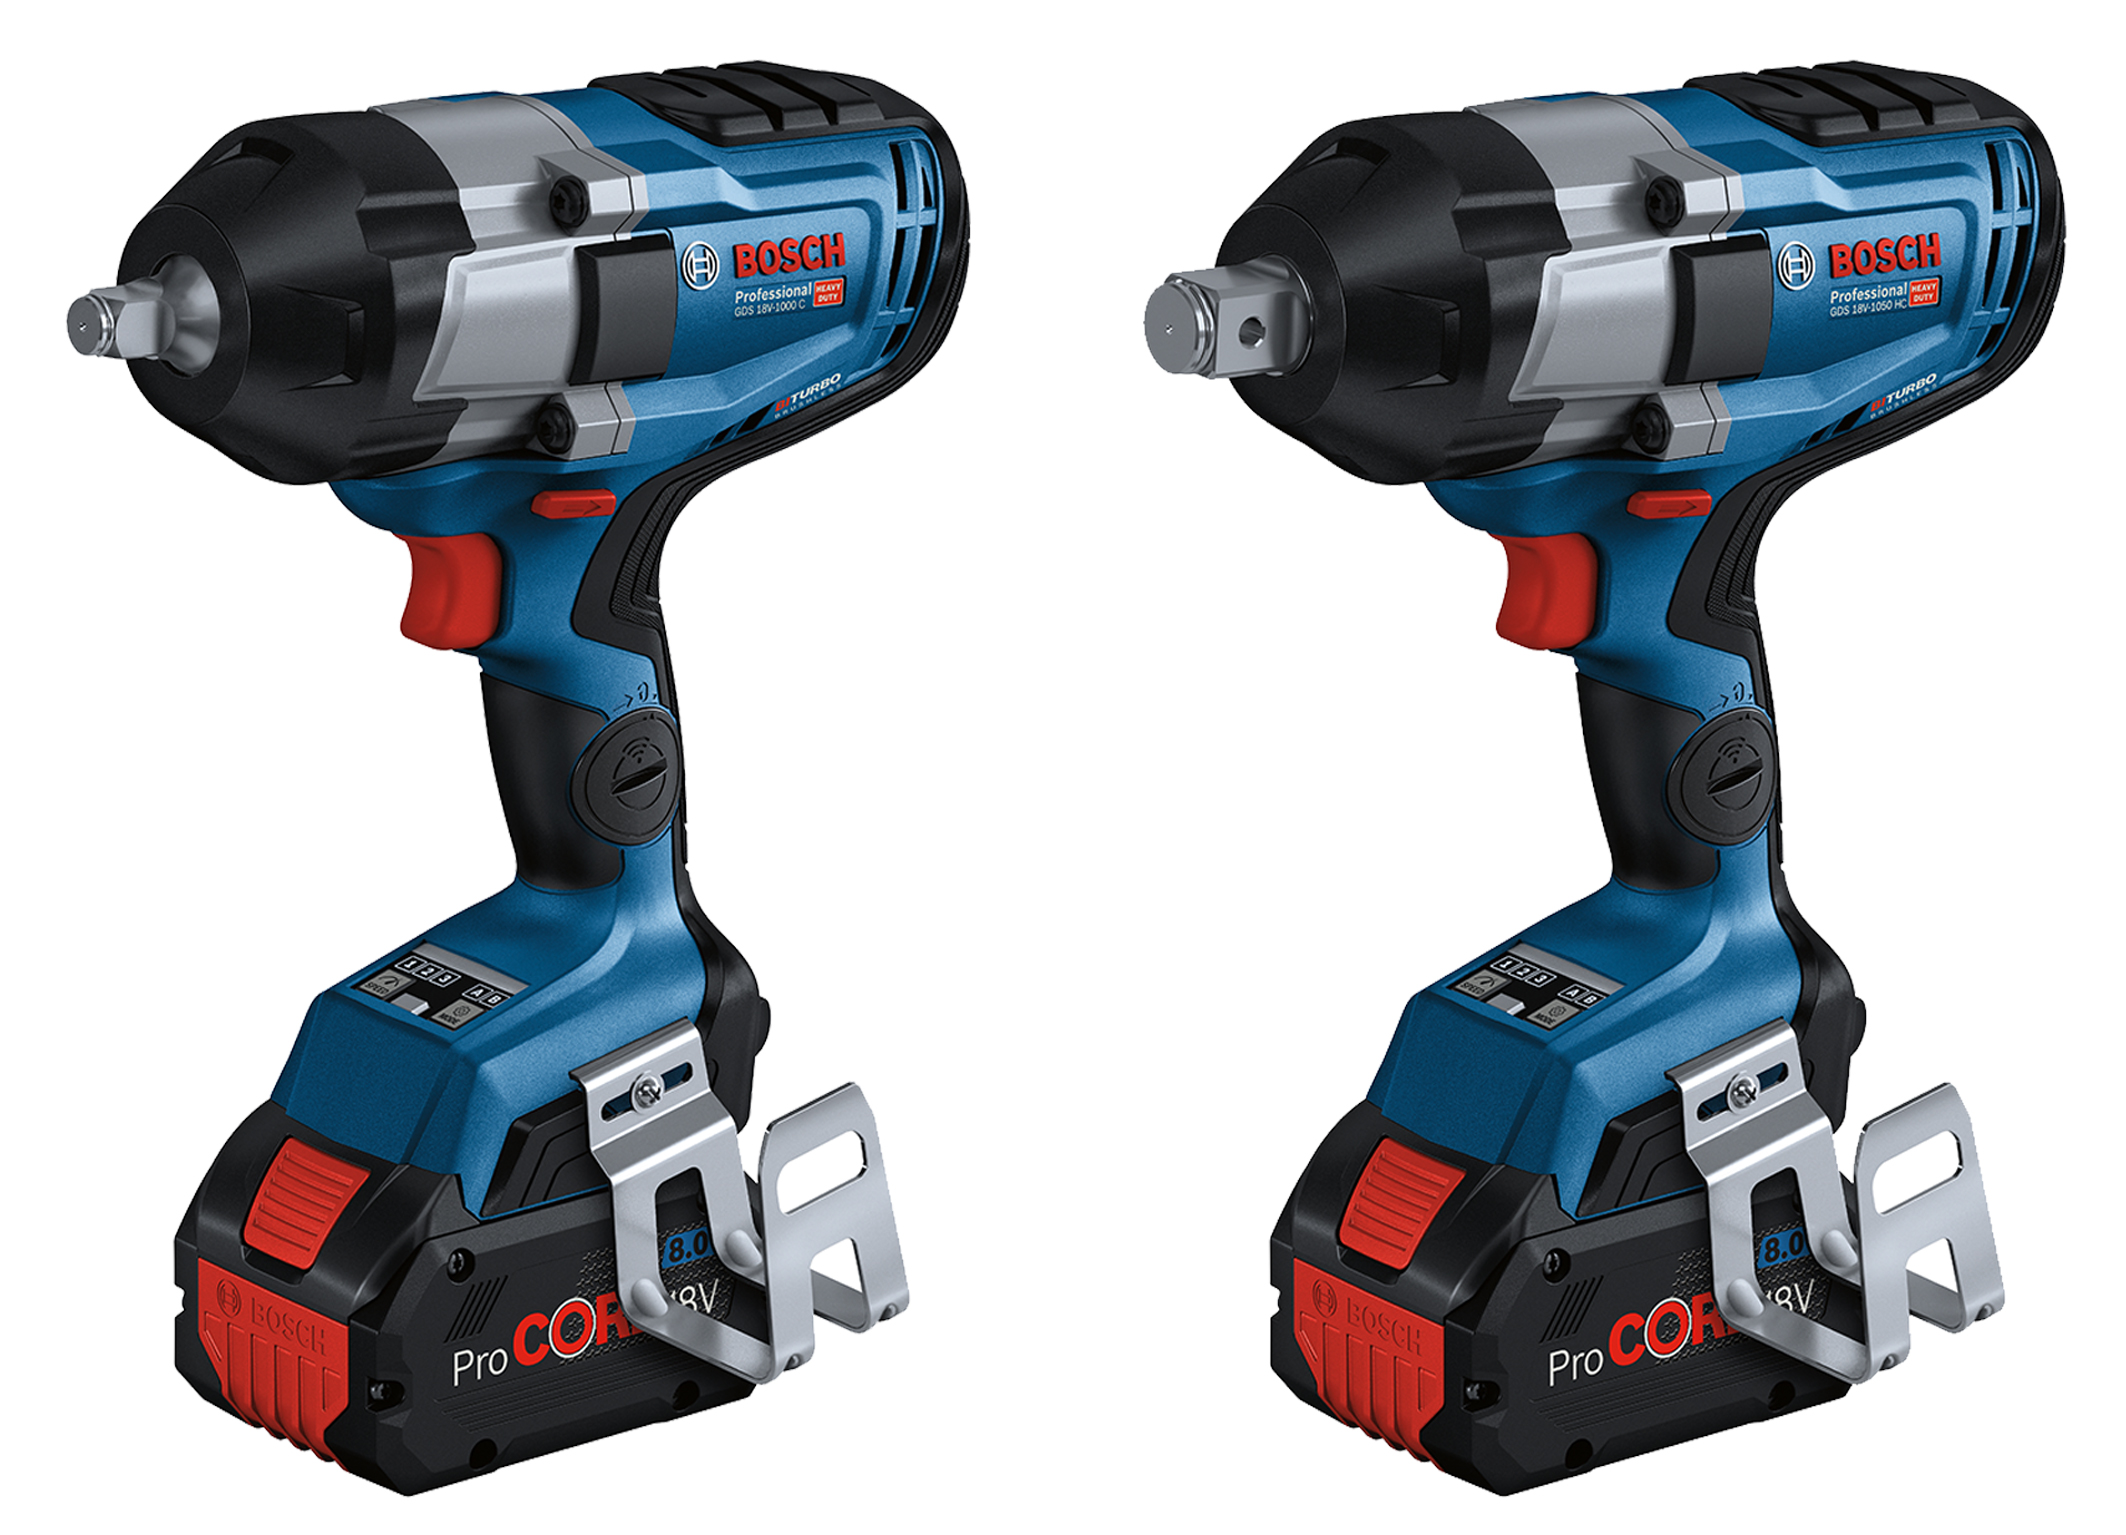 Now with user interface and connectivity: Biturbo impact wrenches from Bosch for pros